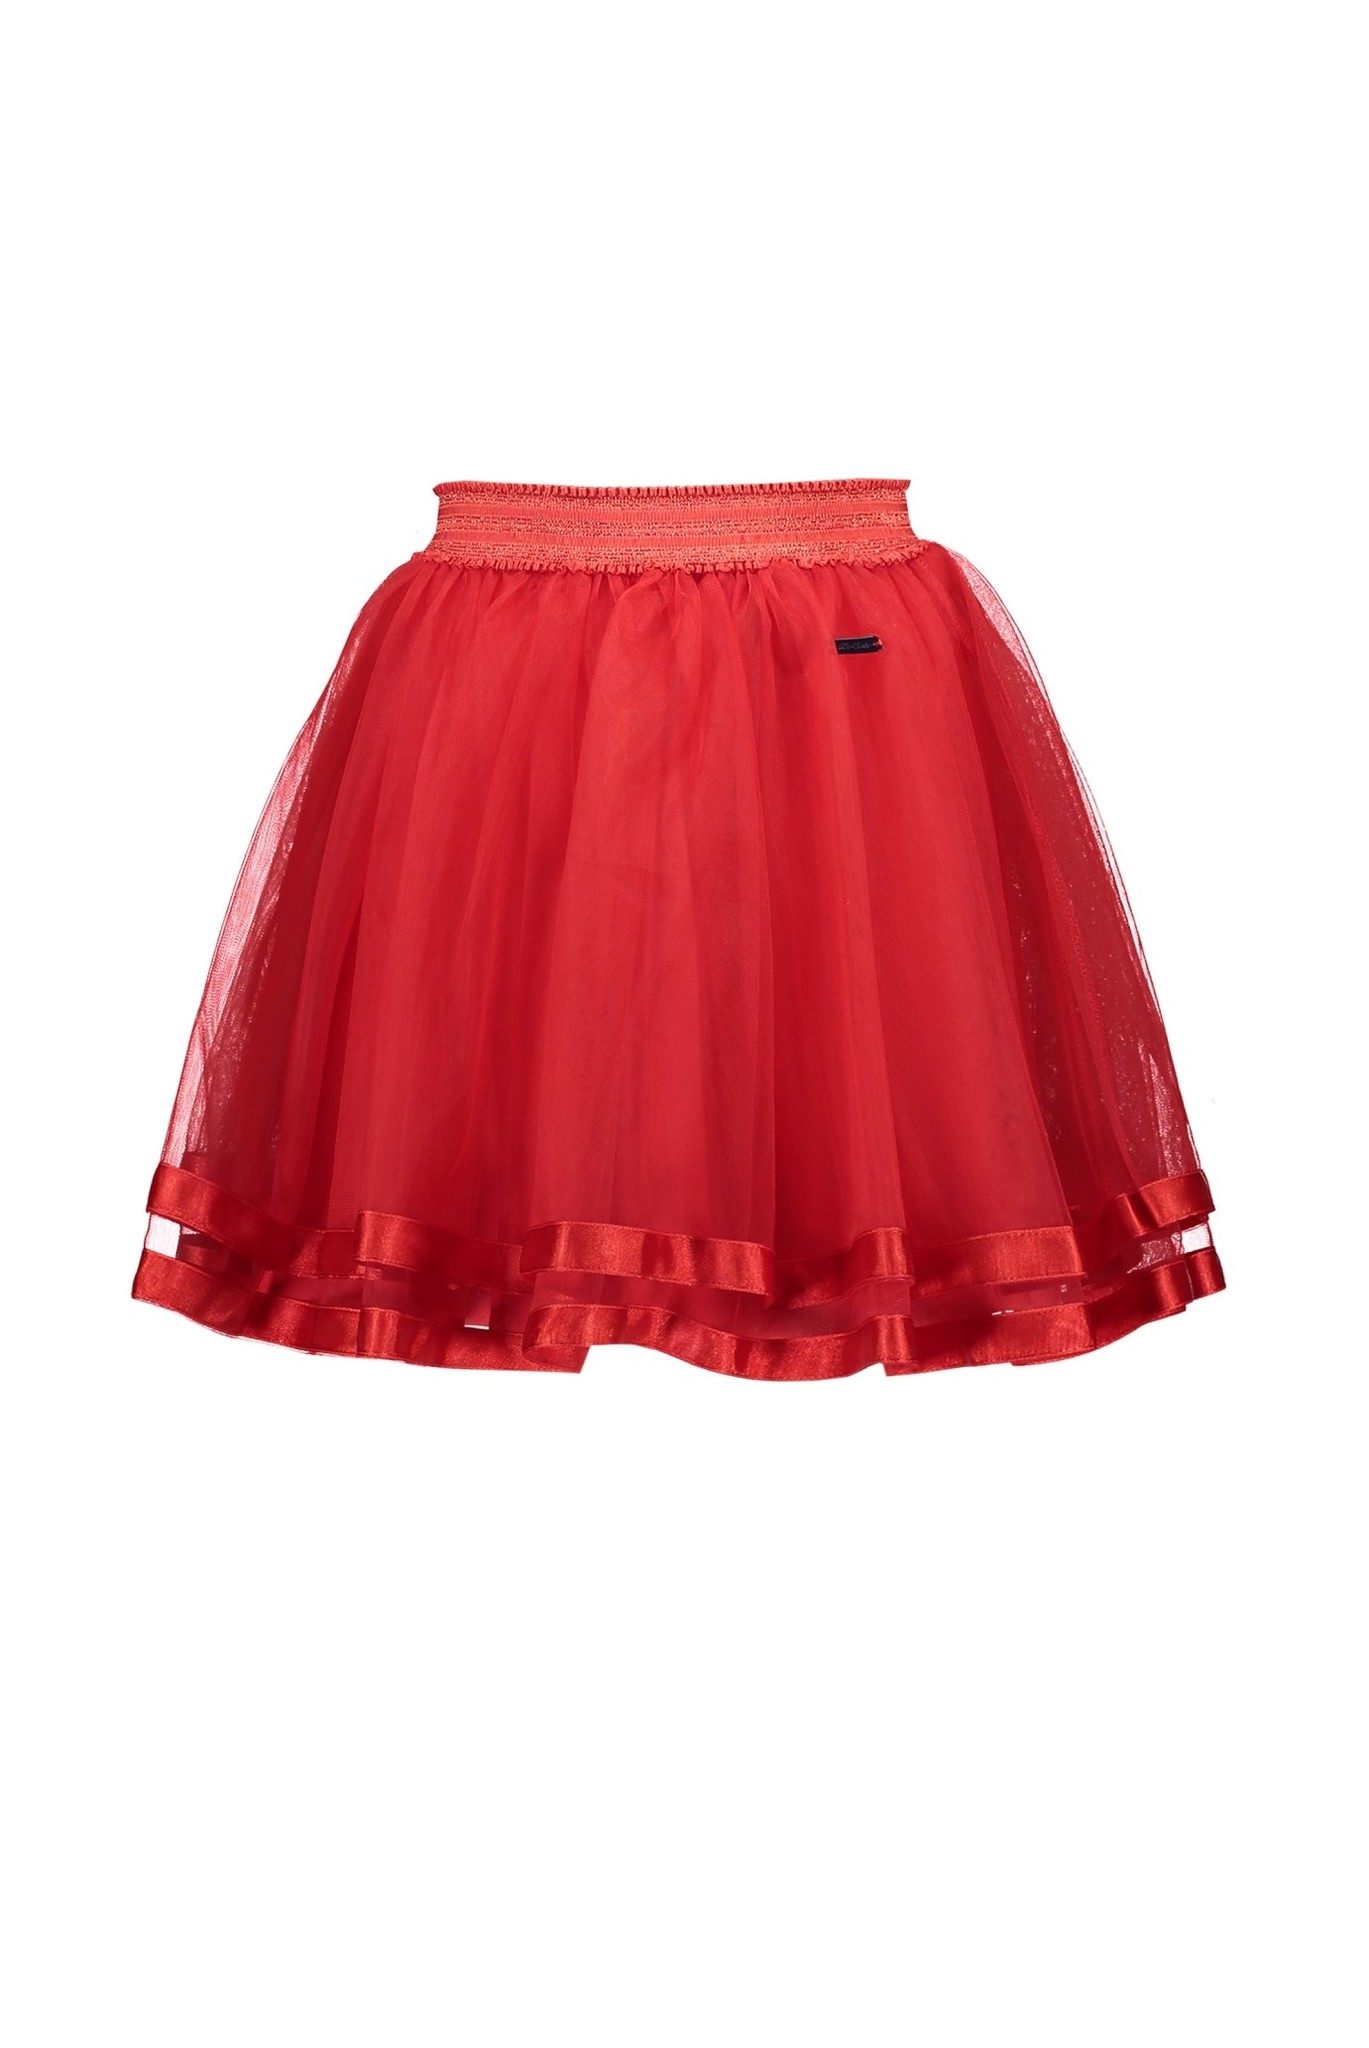 le chic Le Chic Girls Tulle Skirt - 5700 AW21